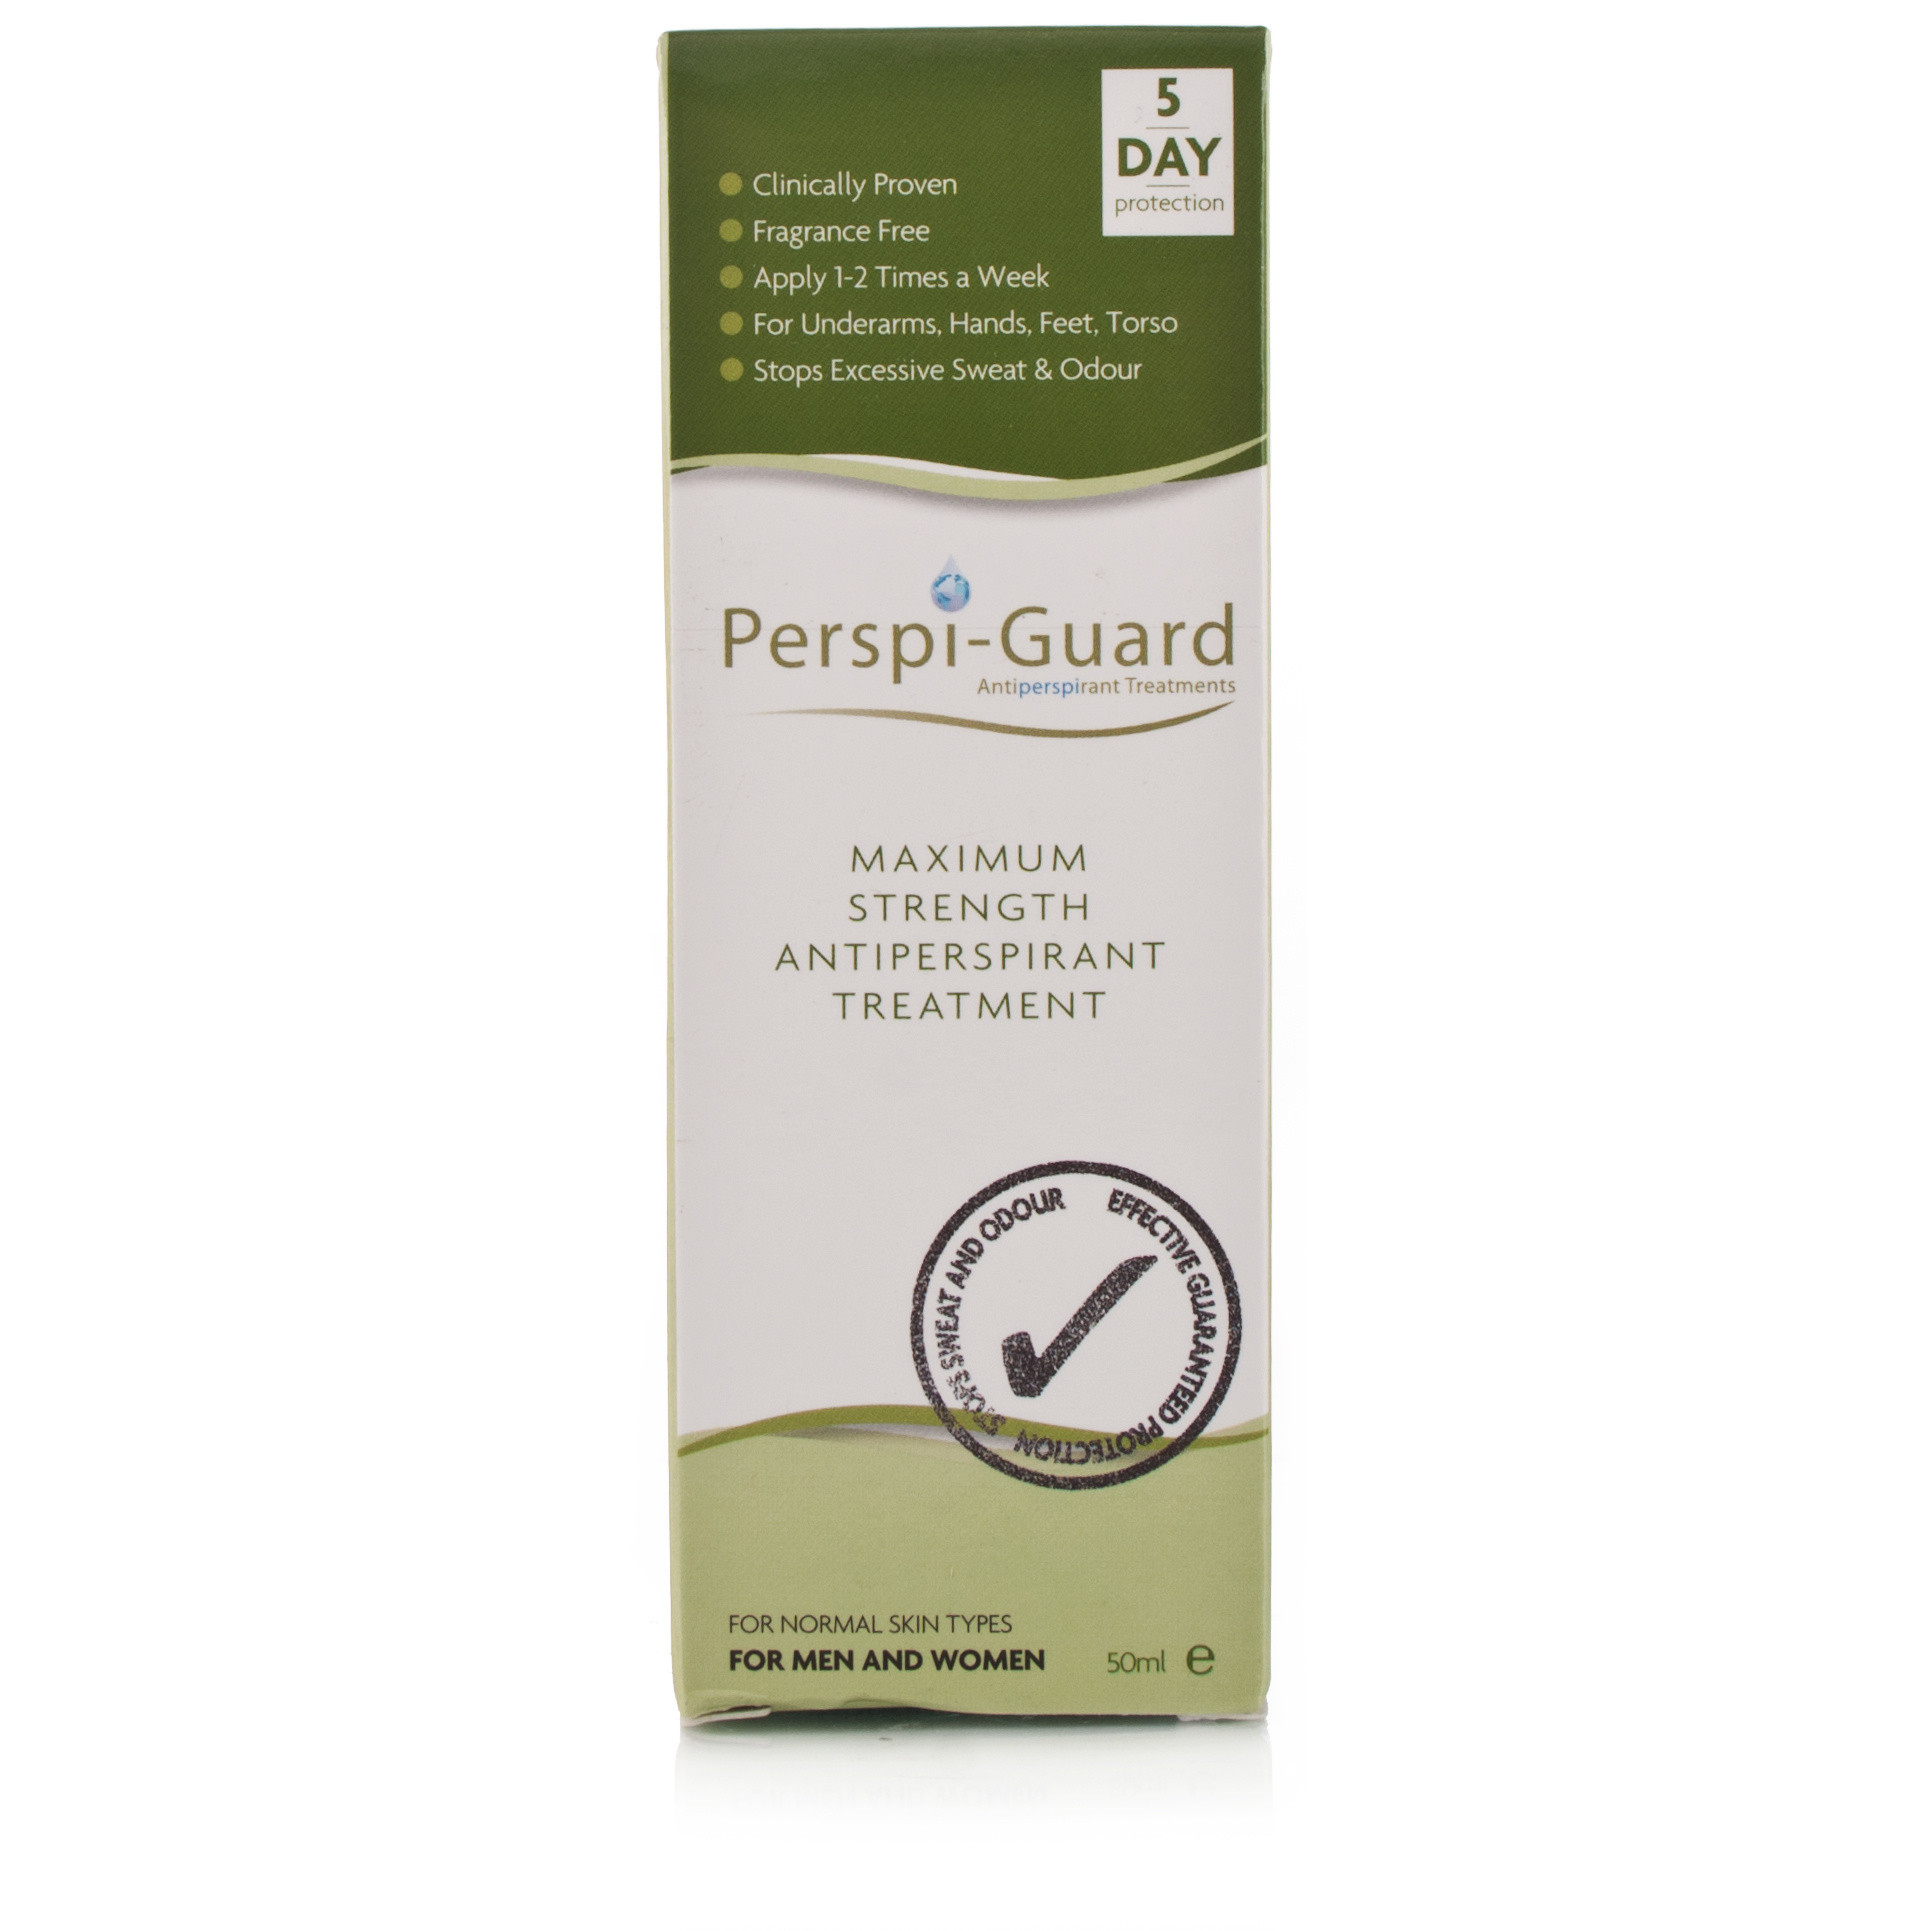 Perspi-Guard Antiperspirant Treatment